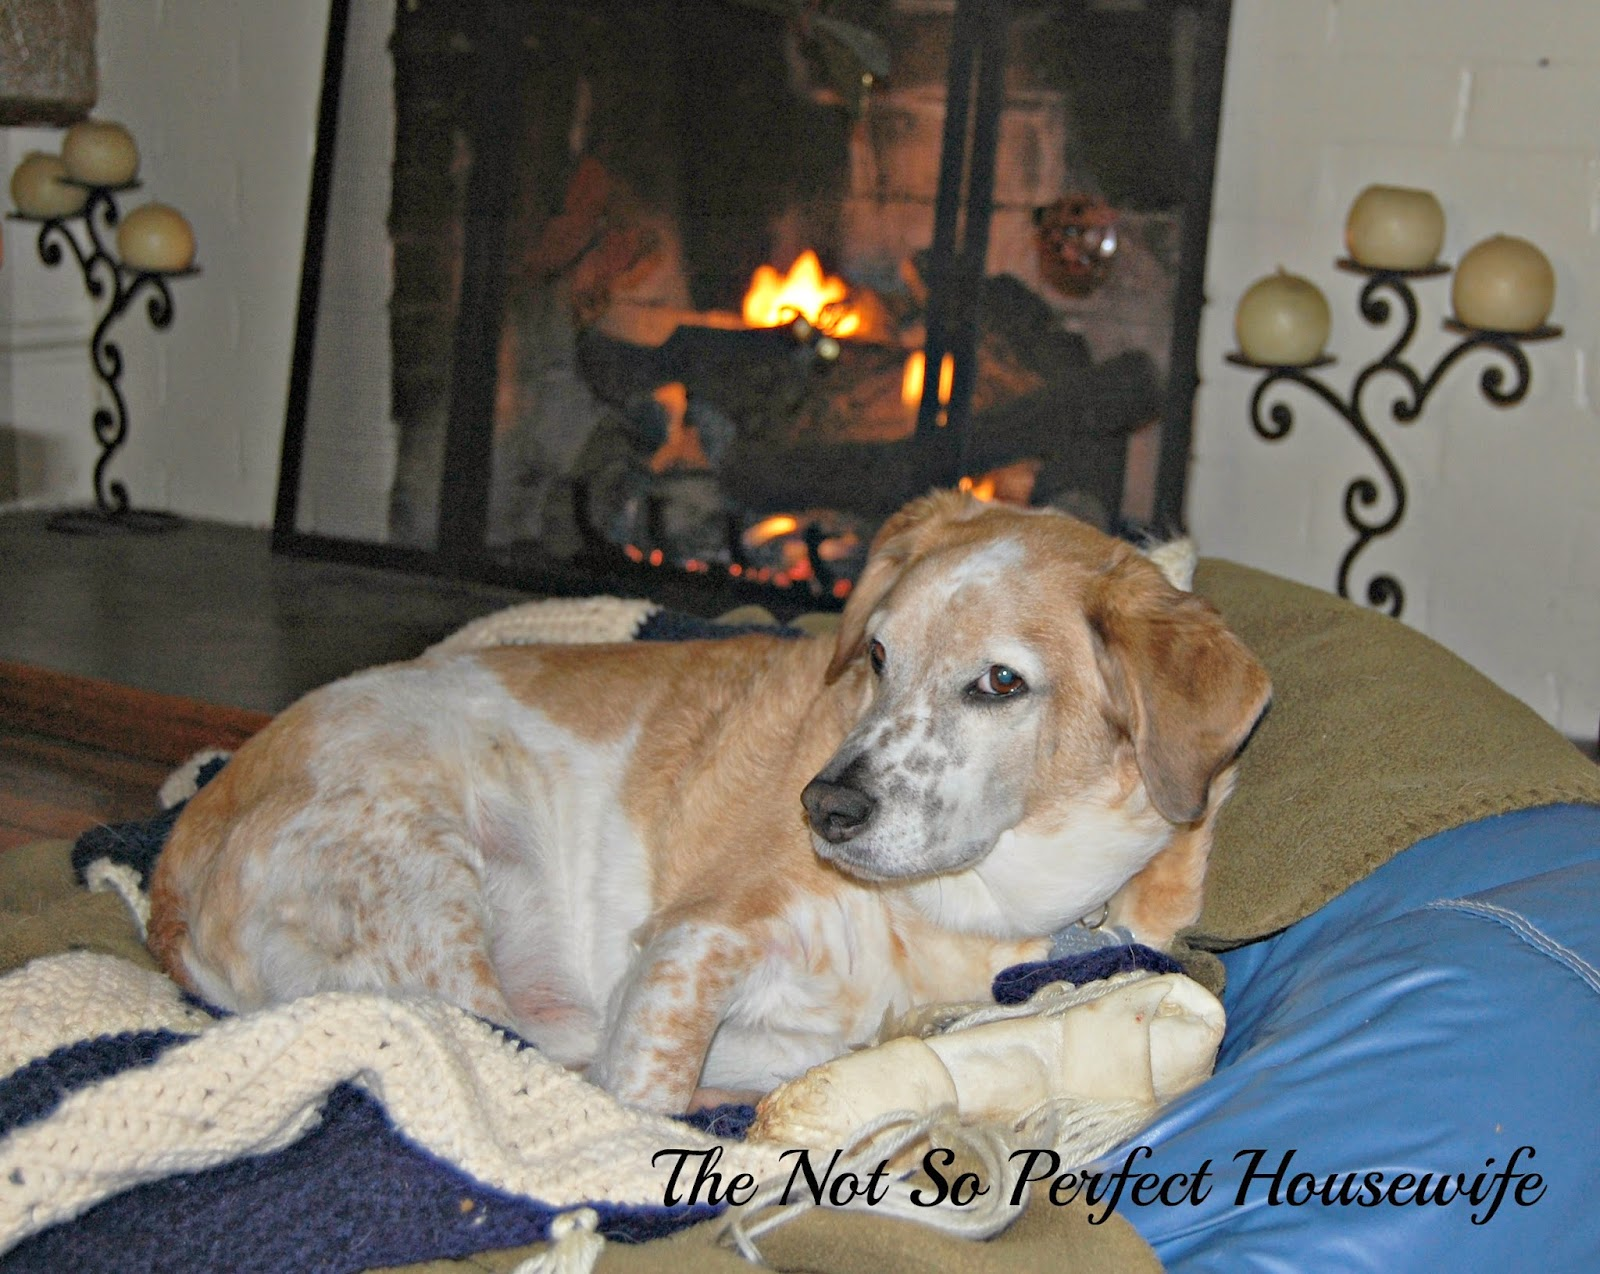 Five on Friday - The Not So Perfect Housewife